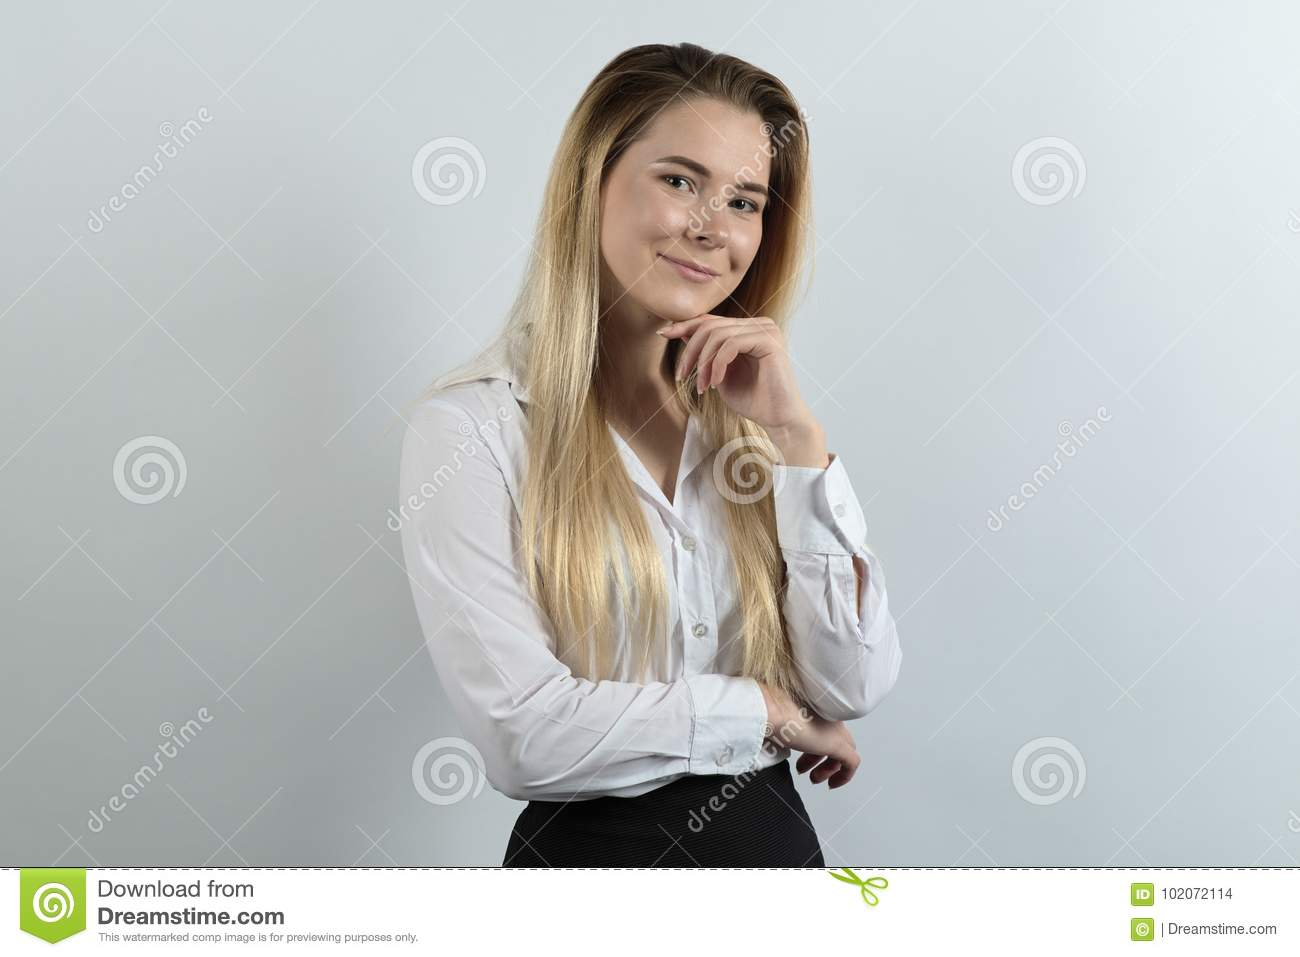 confident young professional woman posing for a portrait in friendly good-natured mood on white background. Long hair, white